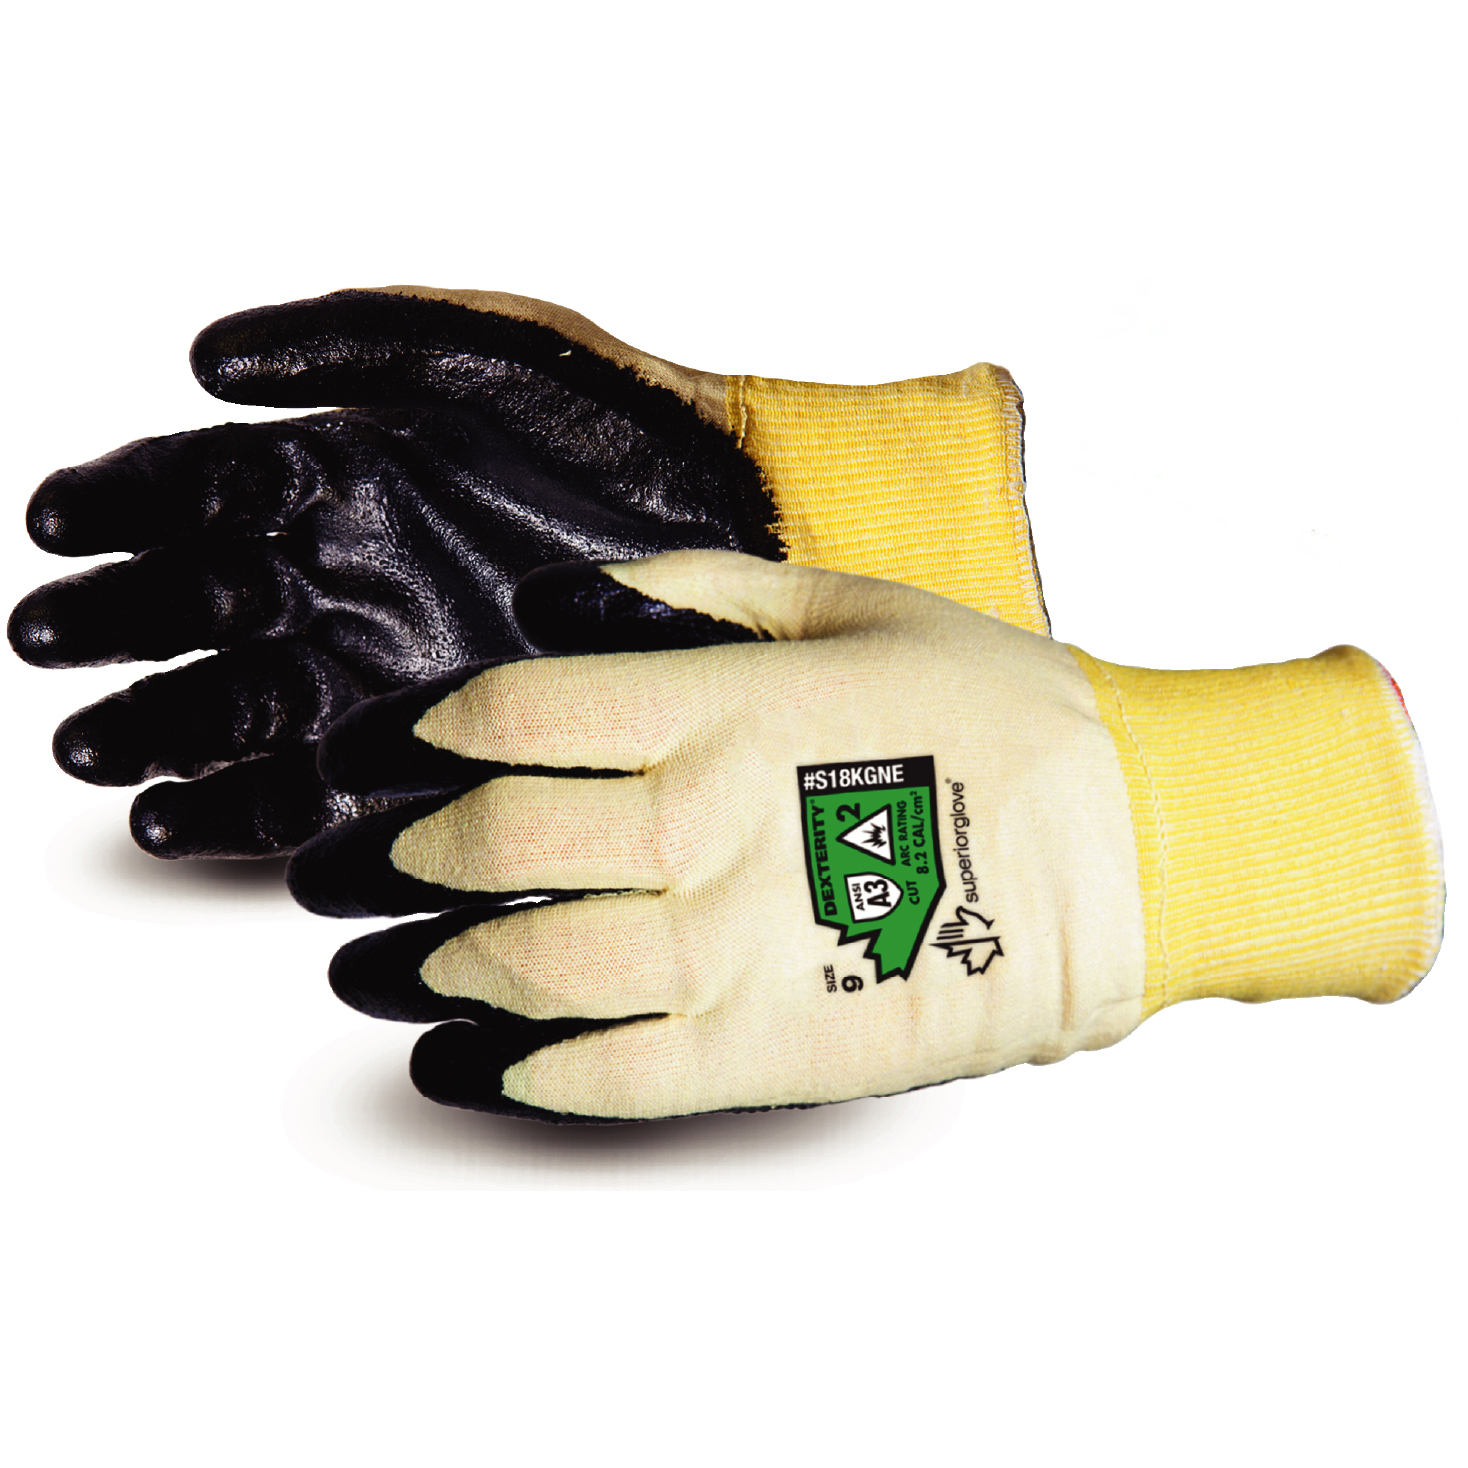 Superior Glove Dexterity 18-G Flame-Resist Arc Flash 6 Black Ref SUS18KGNE06 Up to 3 Day Leadtime